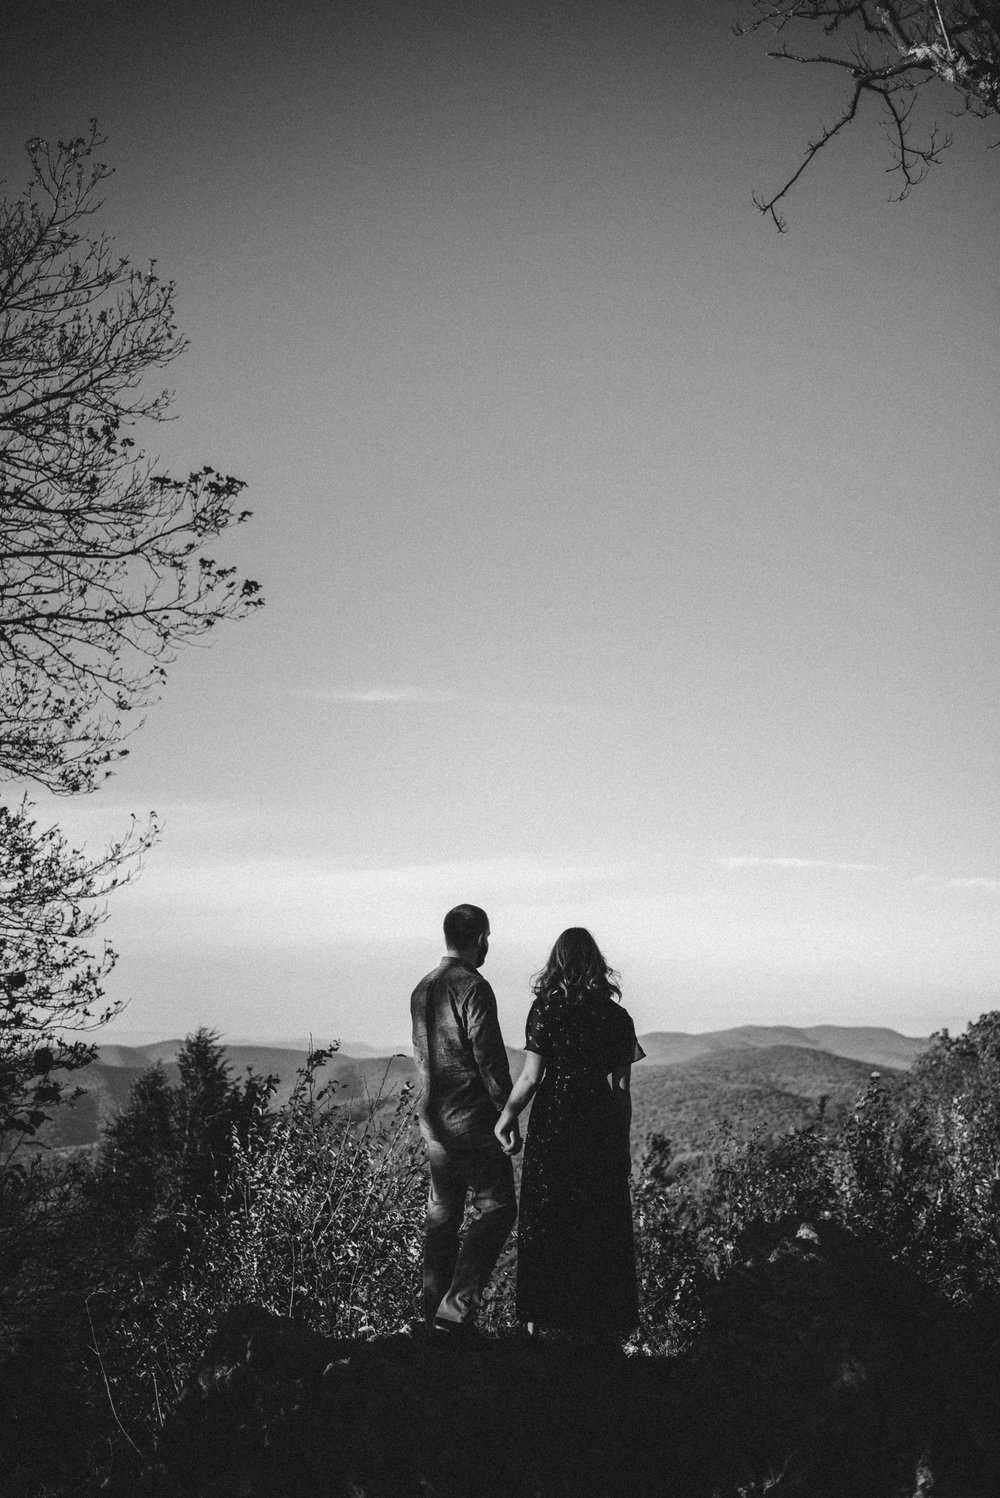 Molly and Zach Engagement Session - Fall Autumn Sunset Couple Adventure Session - Shenandoah National Park - Blue Ridge Parkway Skyline Drive - White Sails Creative.JPG